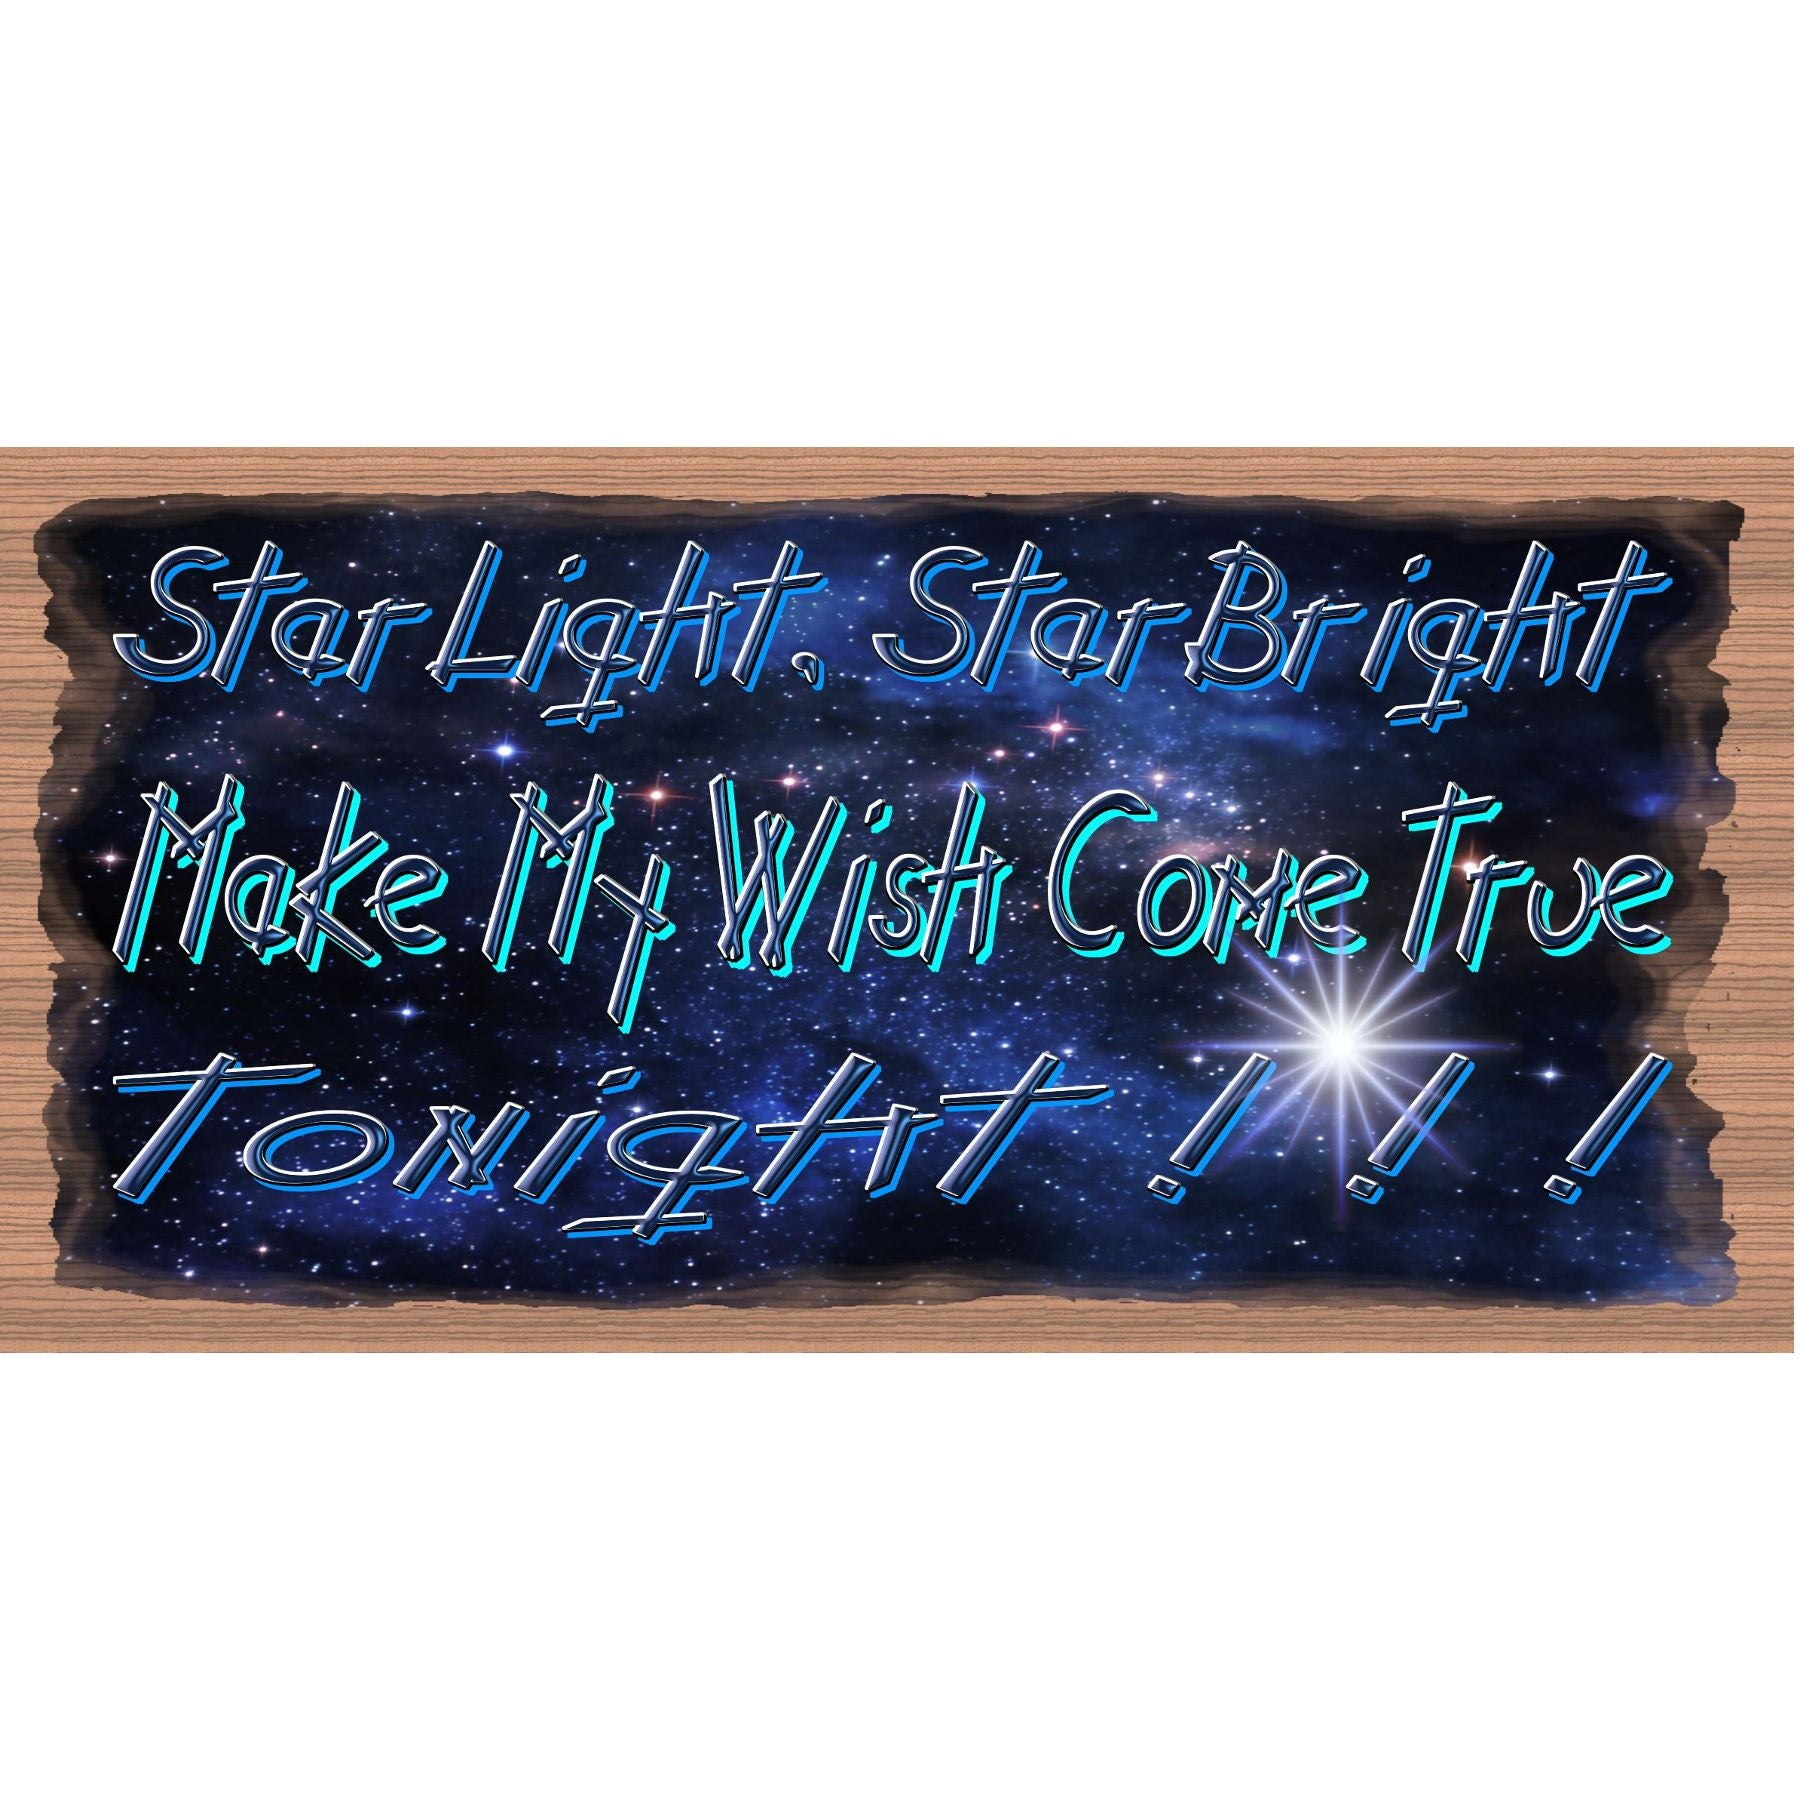 Friend Wood Signs -Star Light Star Bright - GS -2991